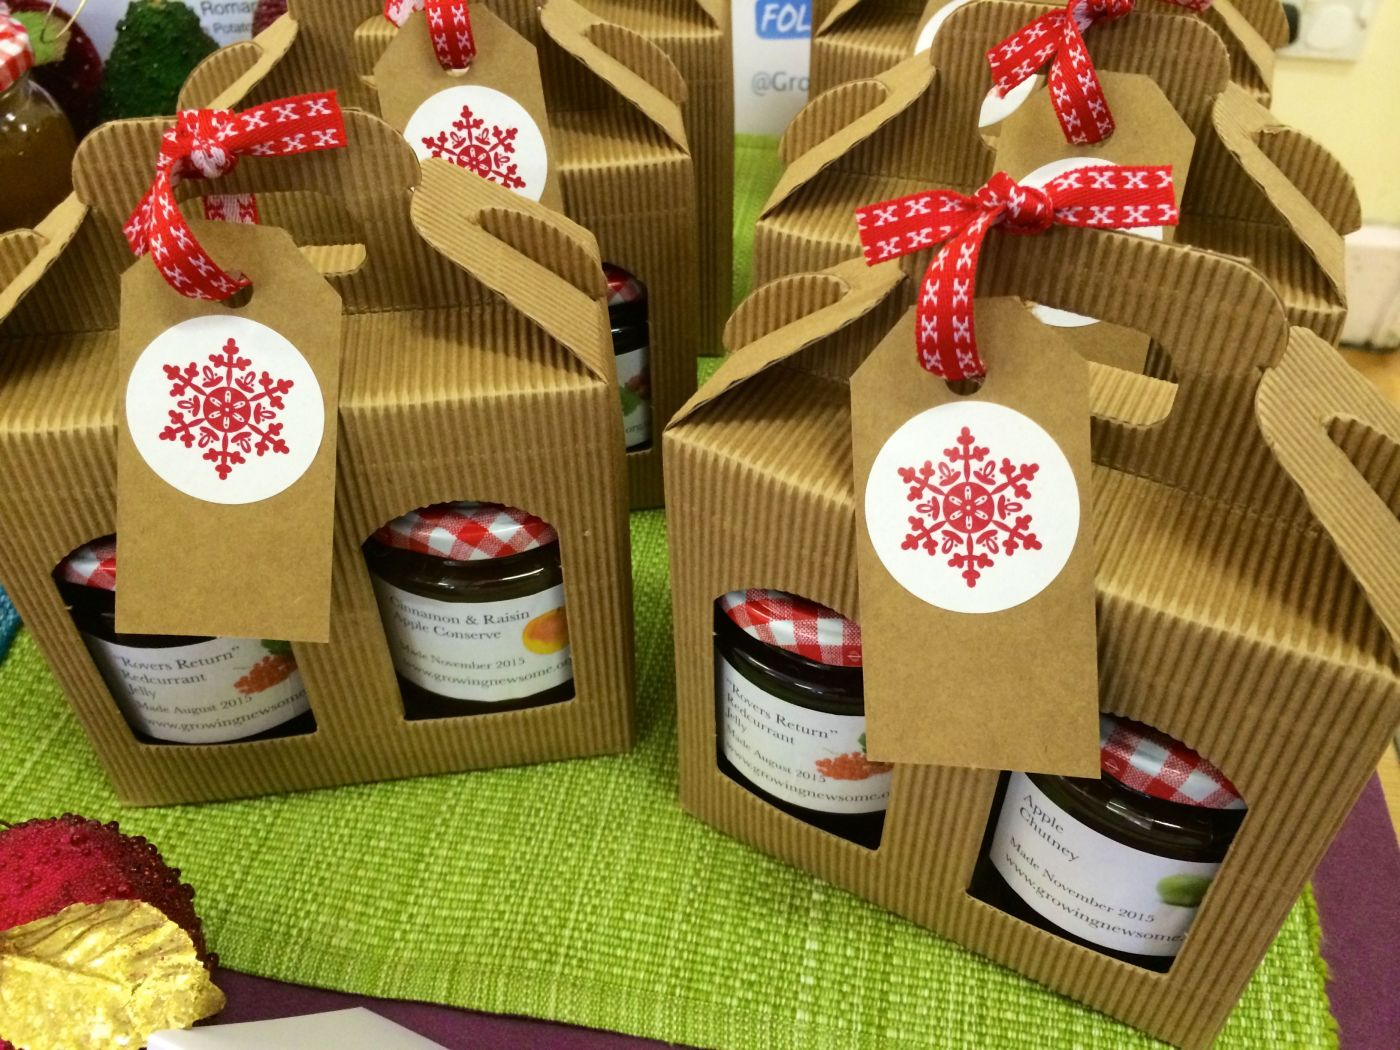 Homegrown jam gift boxes